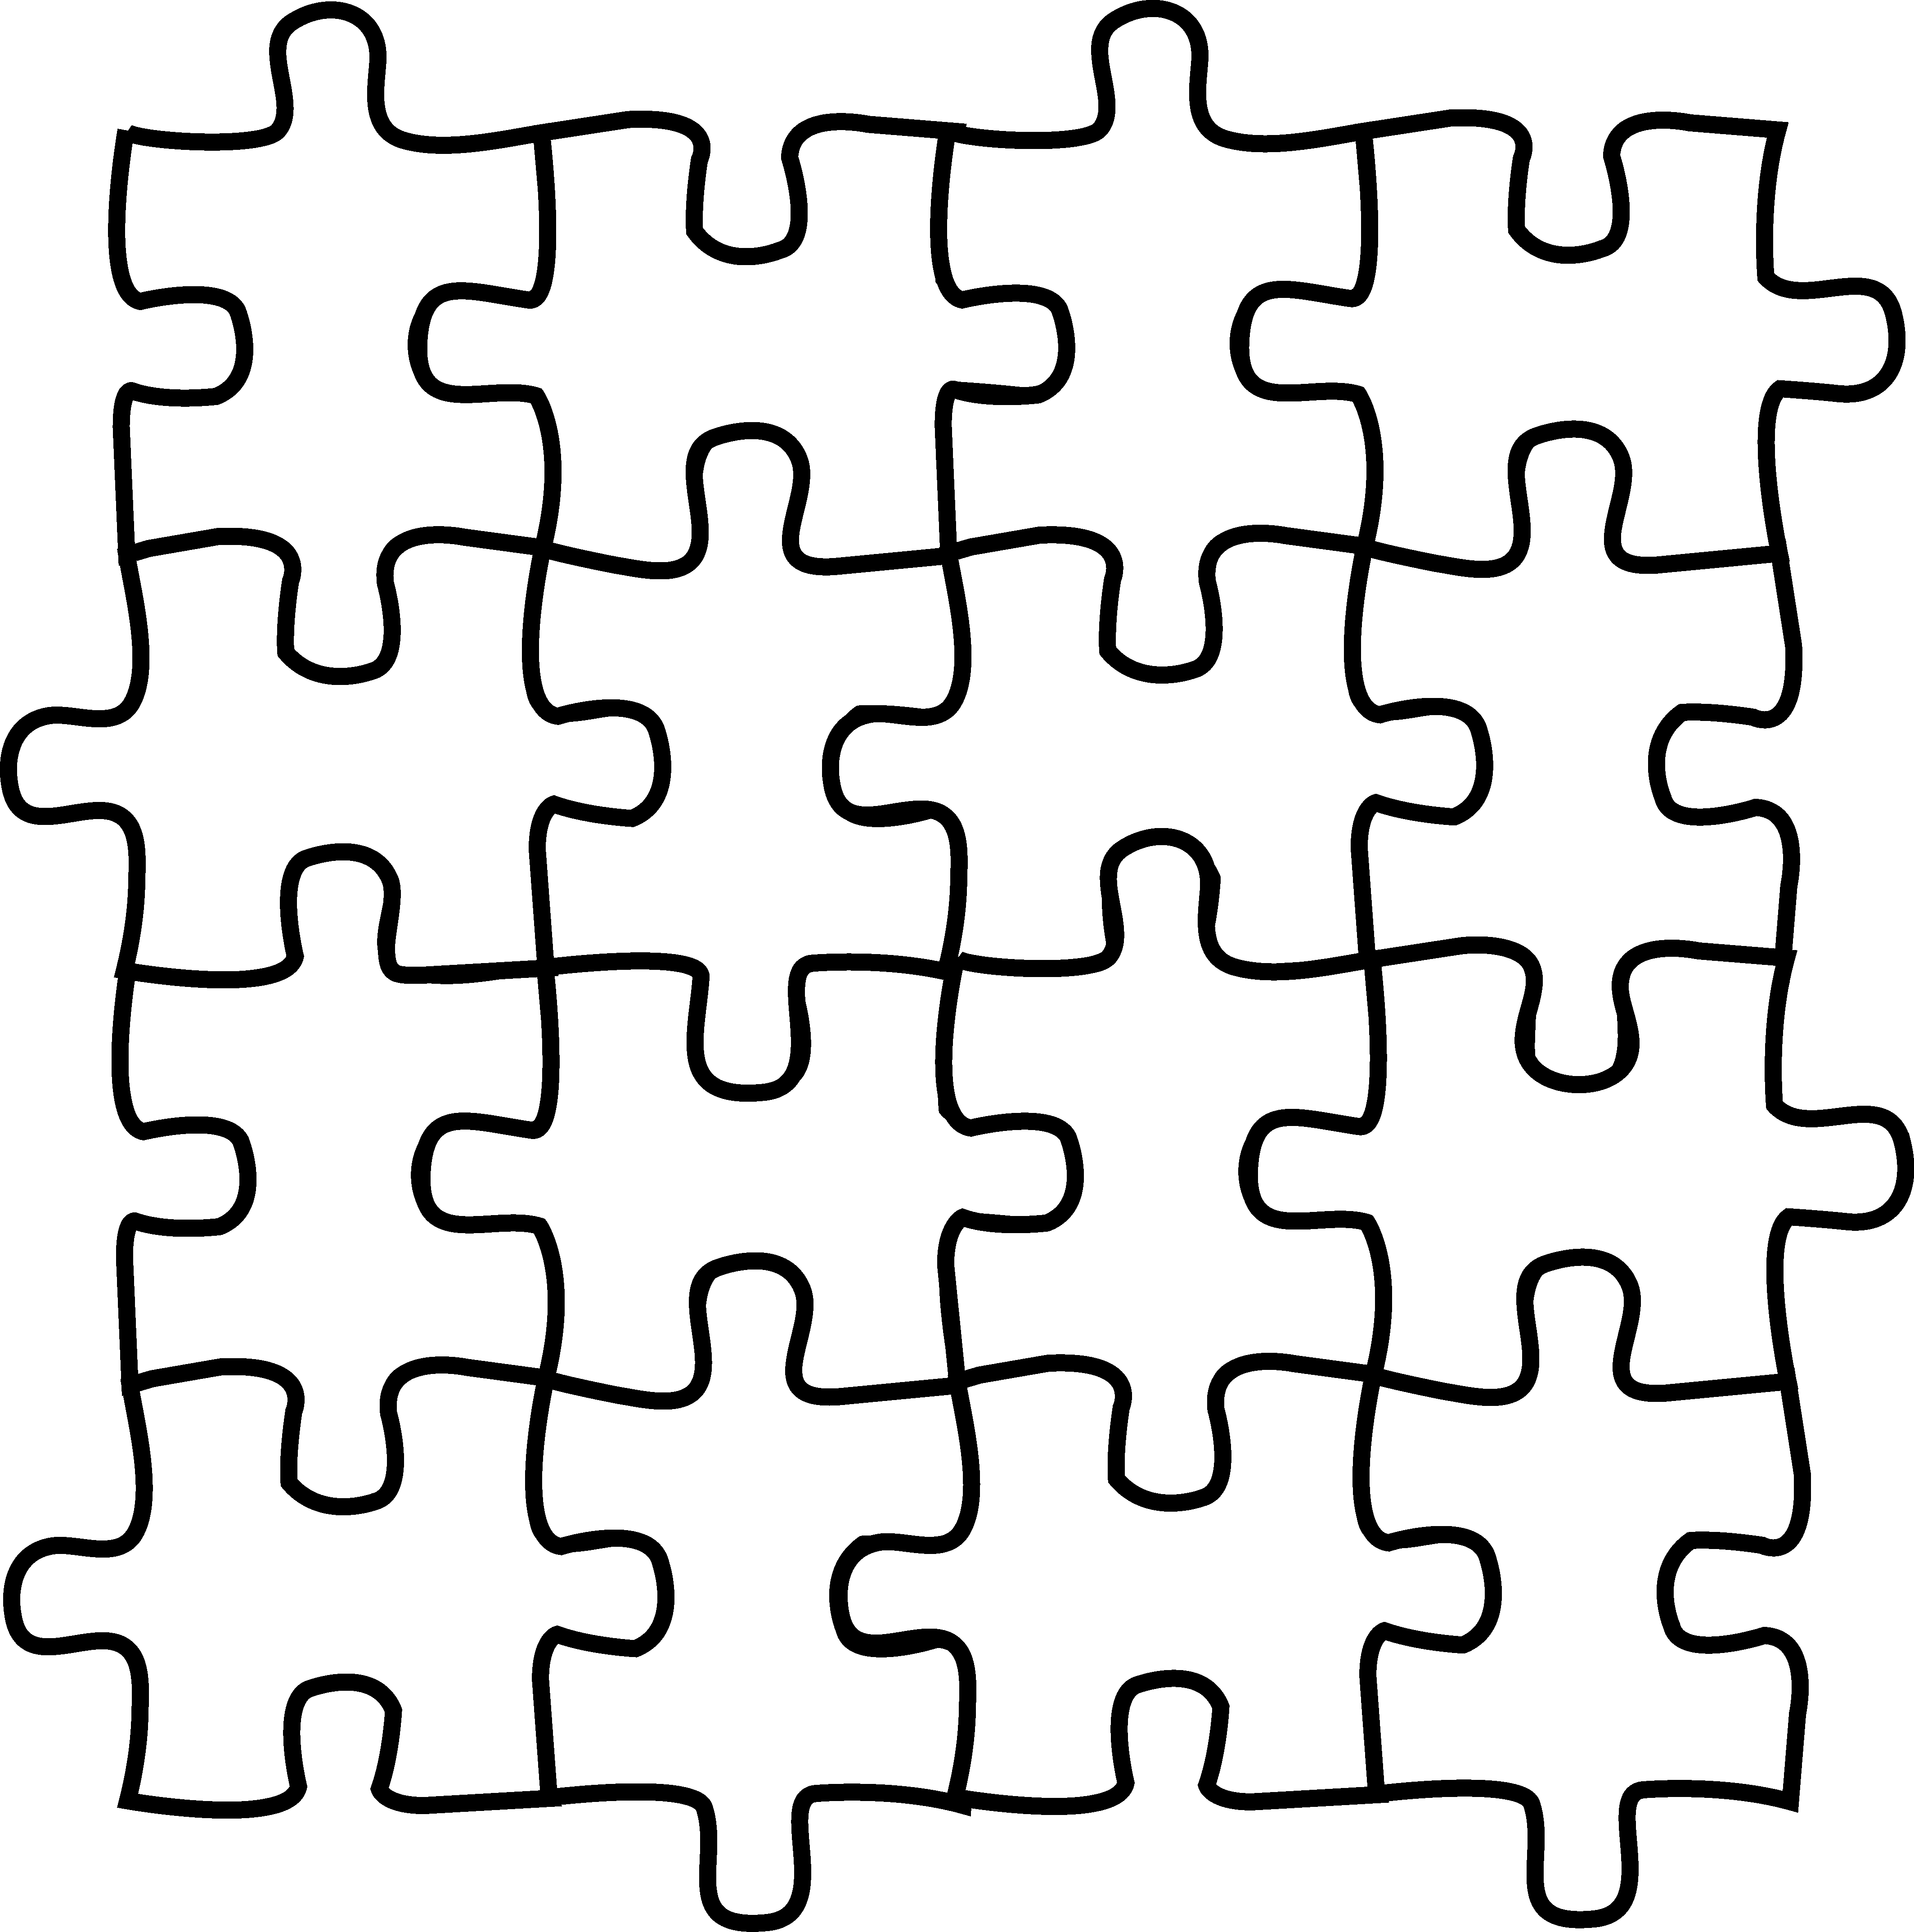 Pieces coloring page free. Puzzle clipart intervention